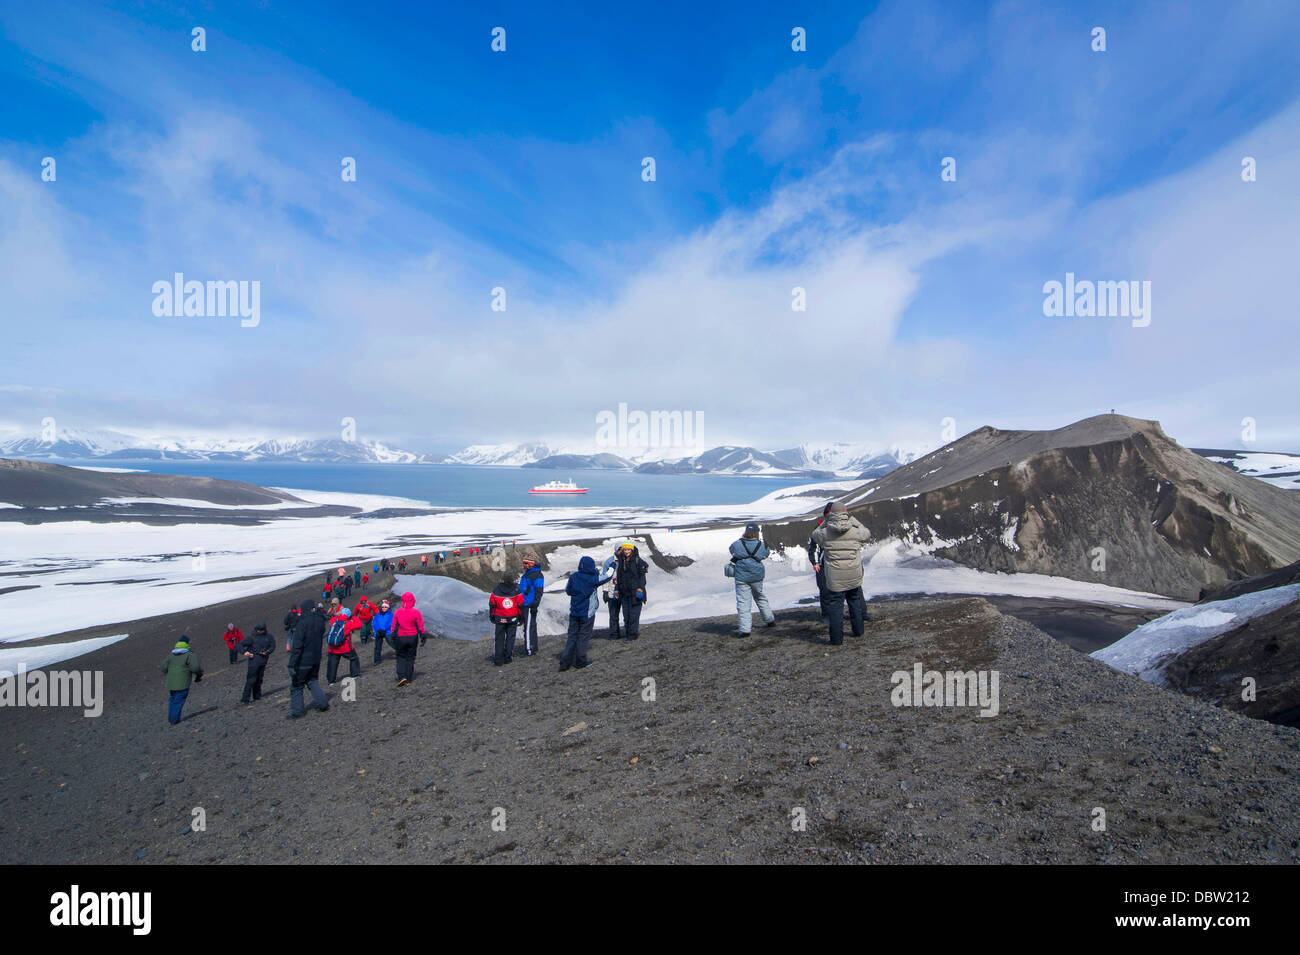 Tourists looking at the Volcano crater at Deception Island, South Shetland Islands, Antarctica, Polar Regions - Stock Image